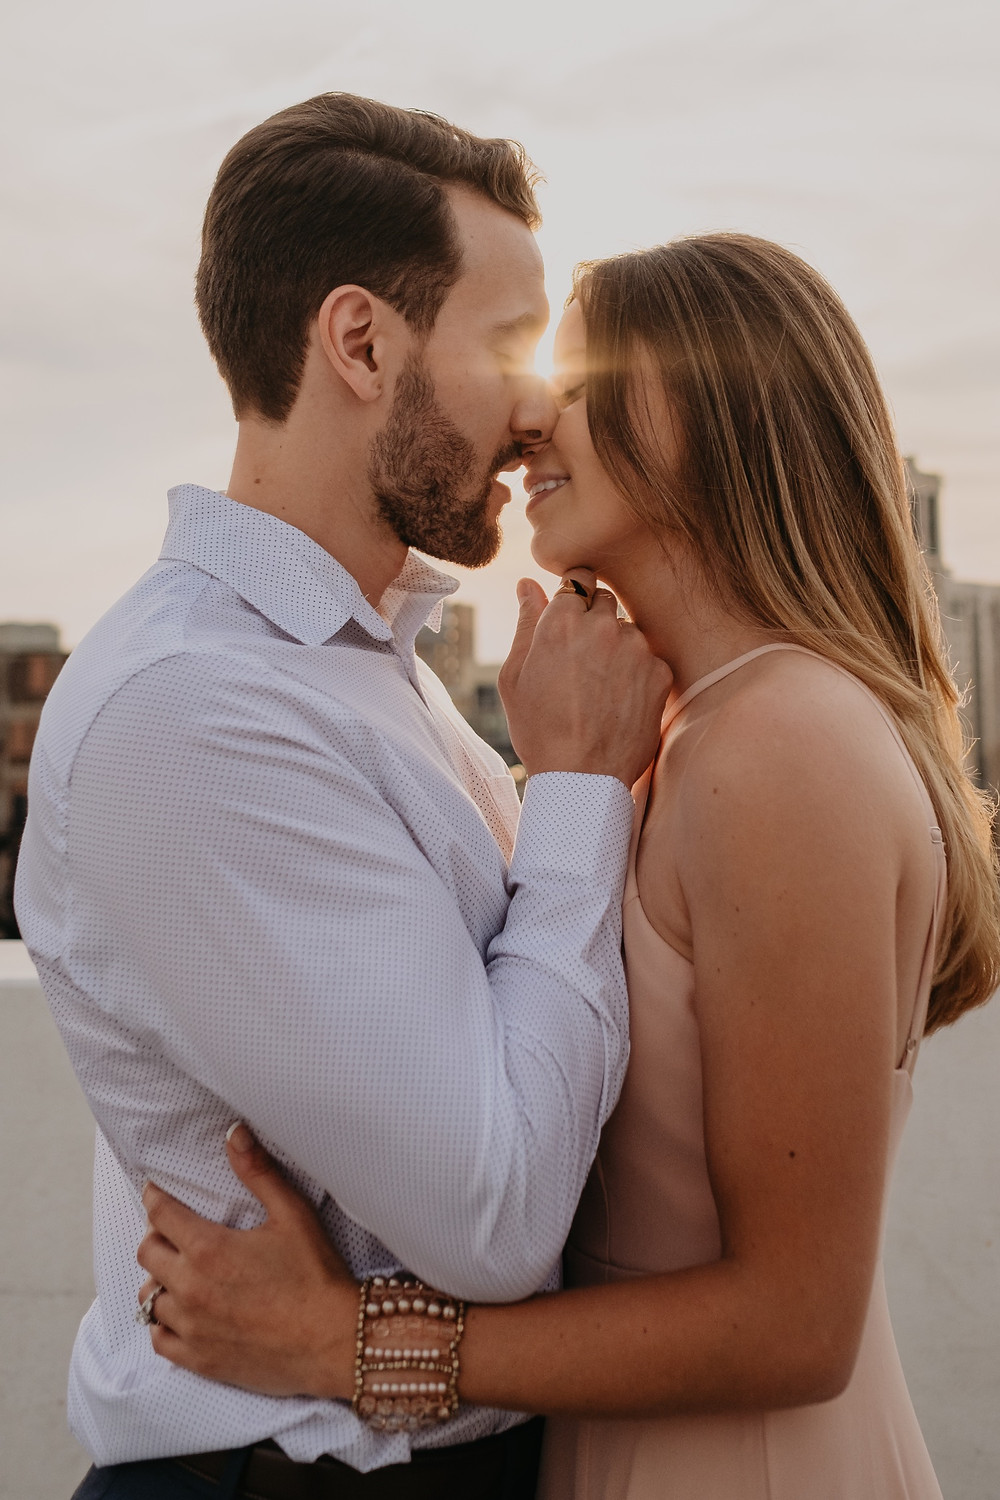 Engagement photos in Detroit. Photographed by Nicole Leanne Photography.